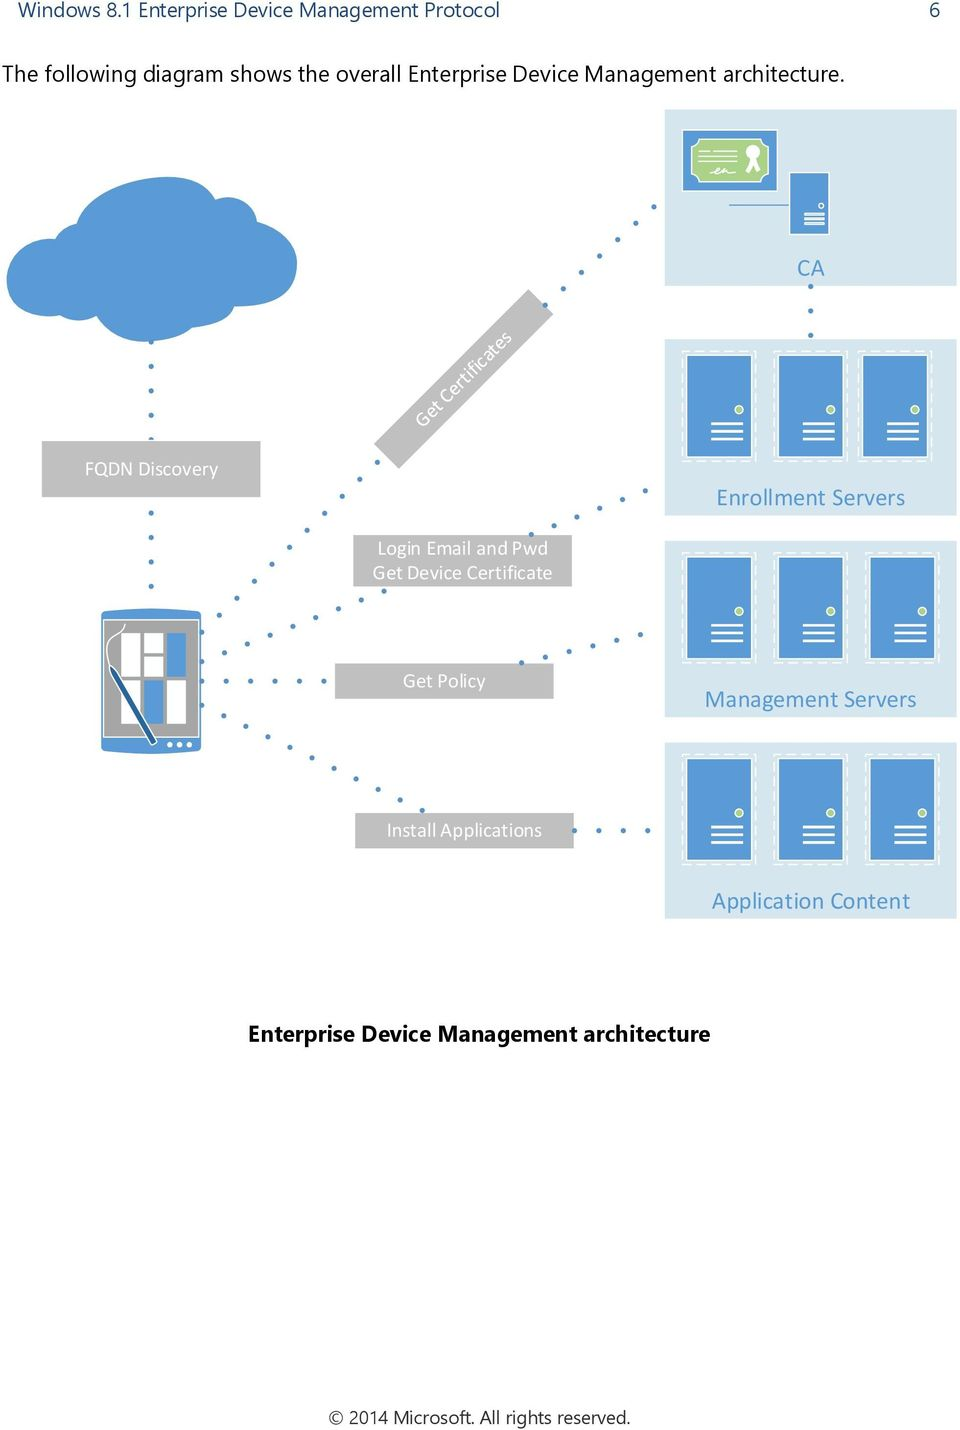 Enterprise Device Management architecture.